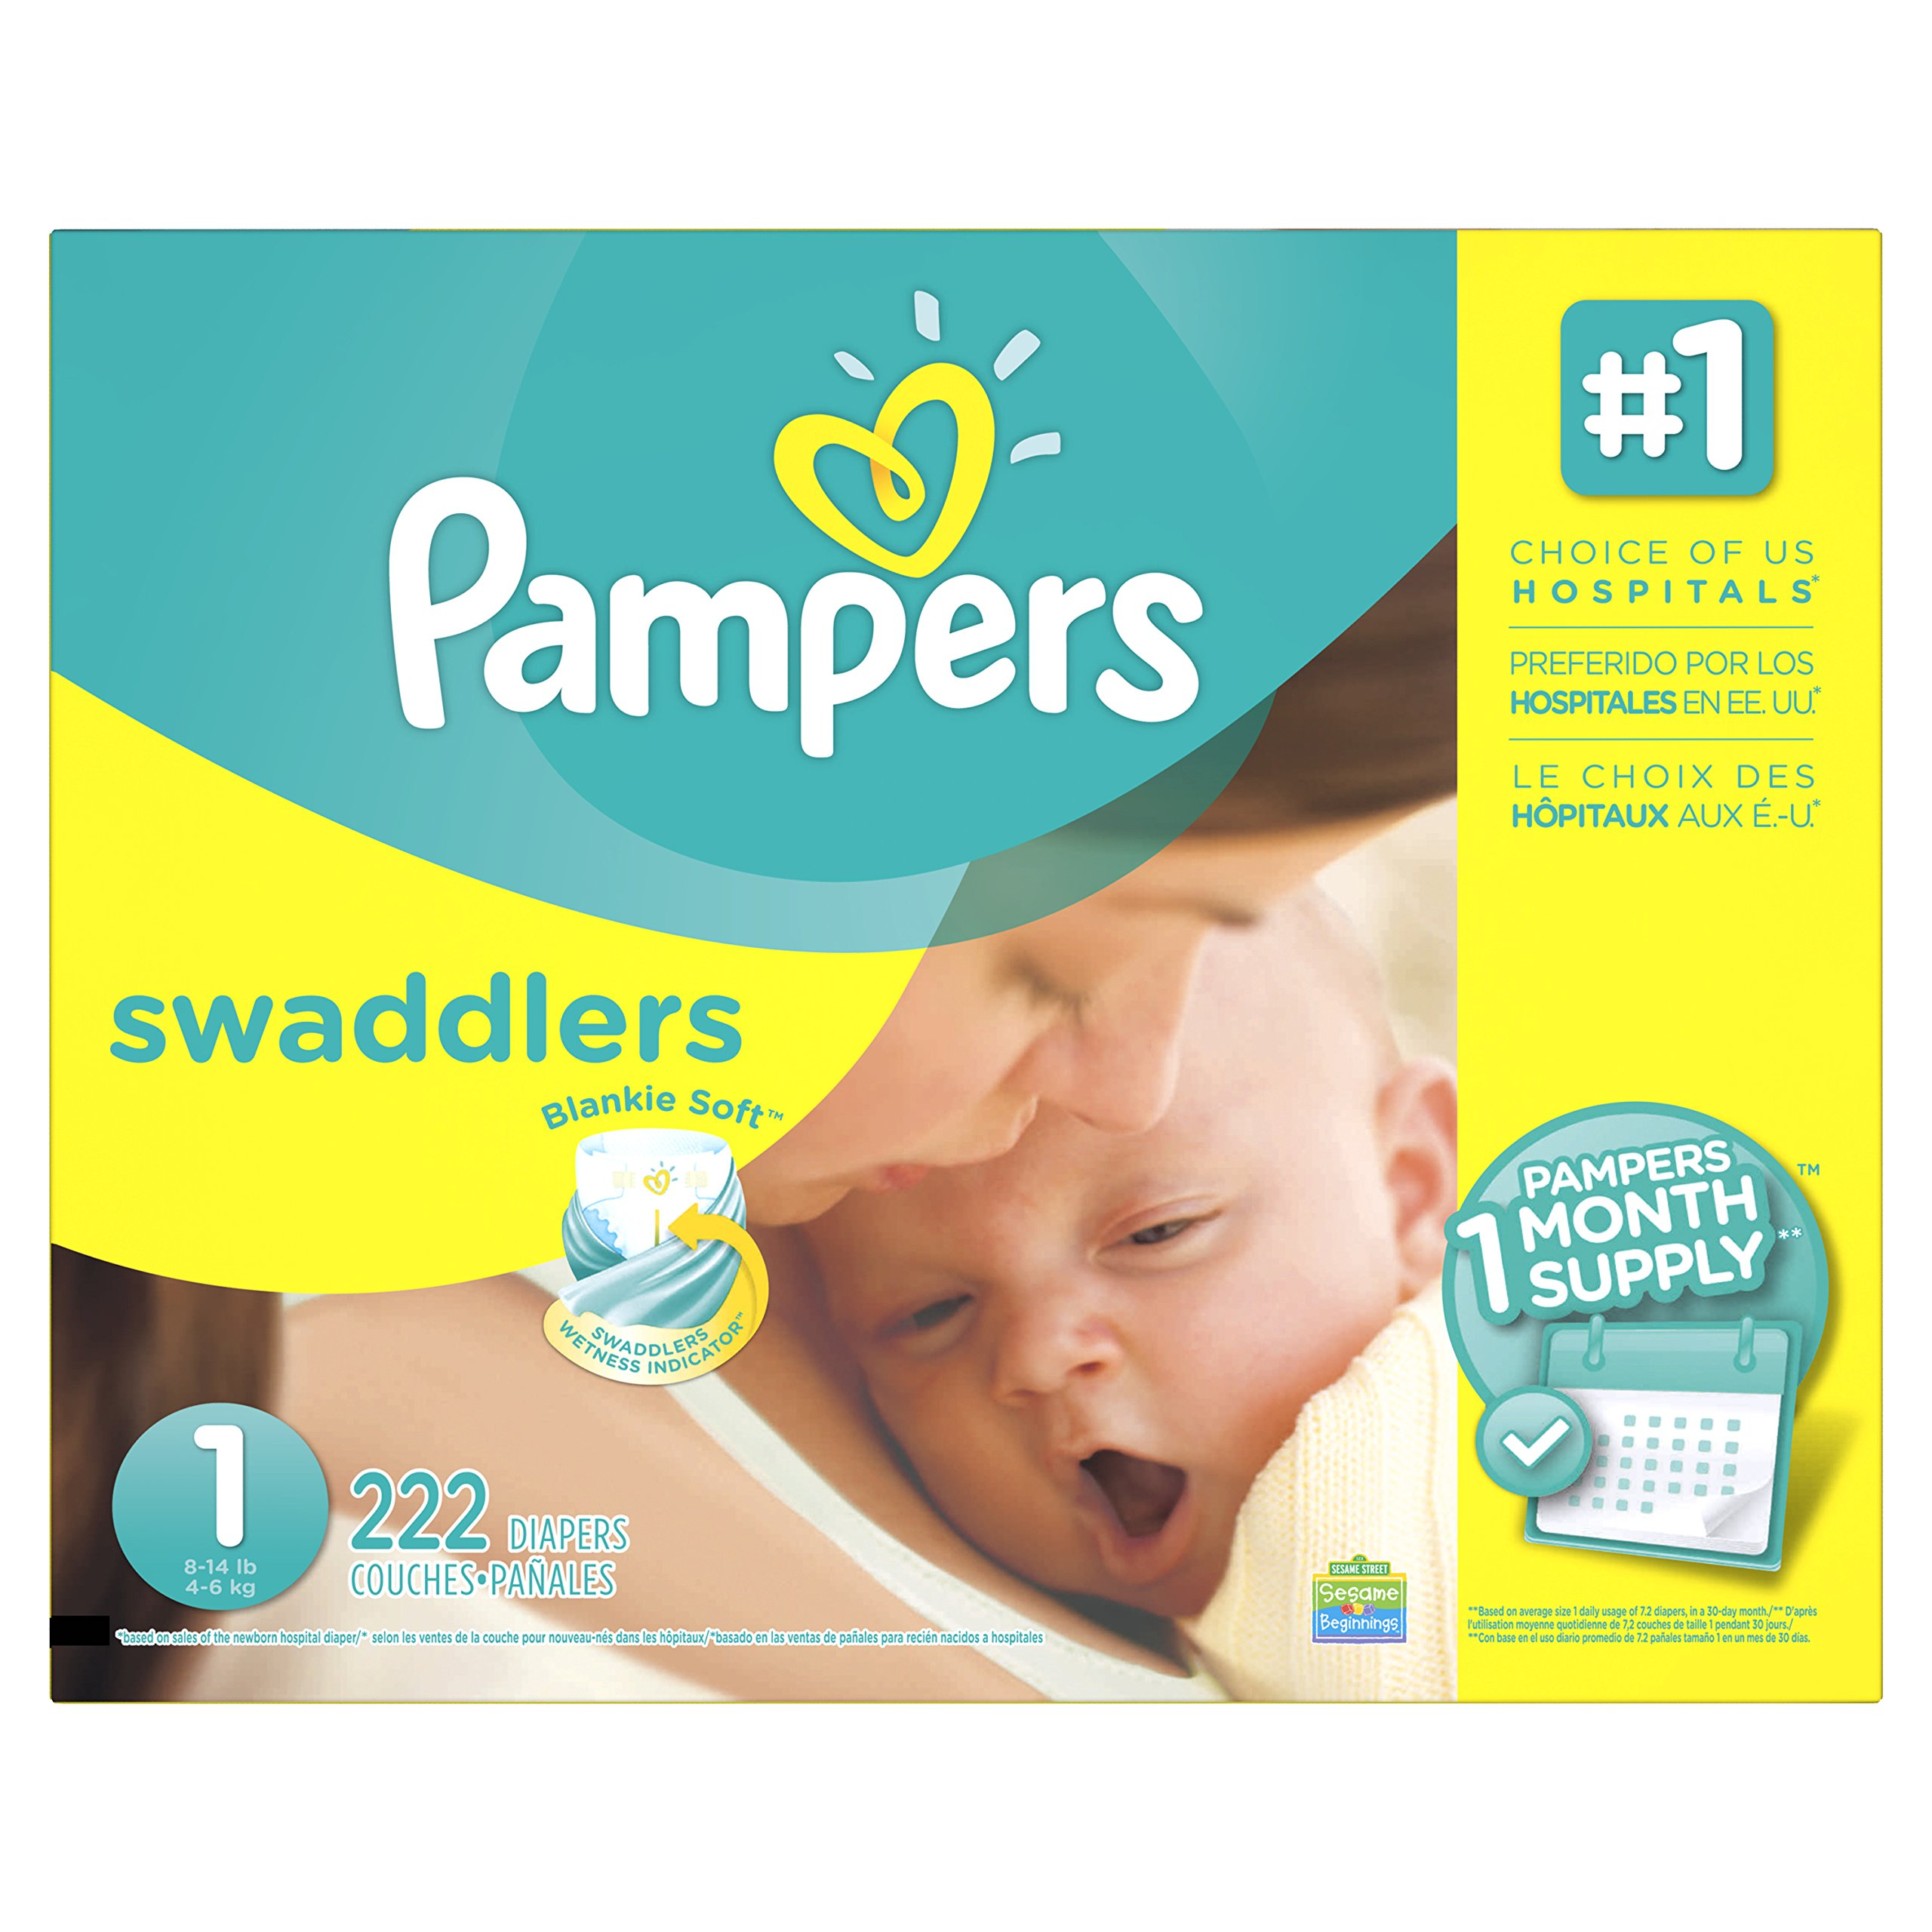 Pampers Swaddlers Disposable Diapers Newborn Size 1 (8-14 lb), 222 Count, ONE MONTH SUPPLY